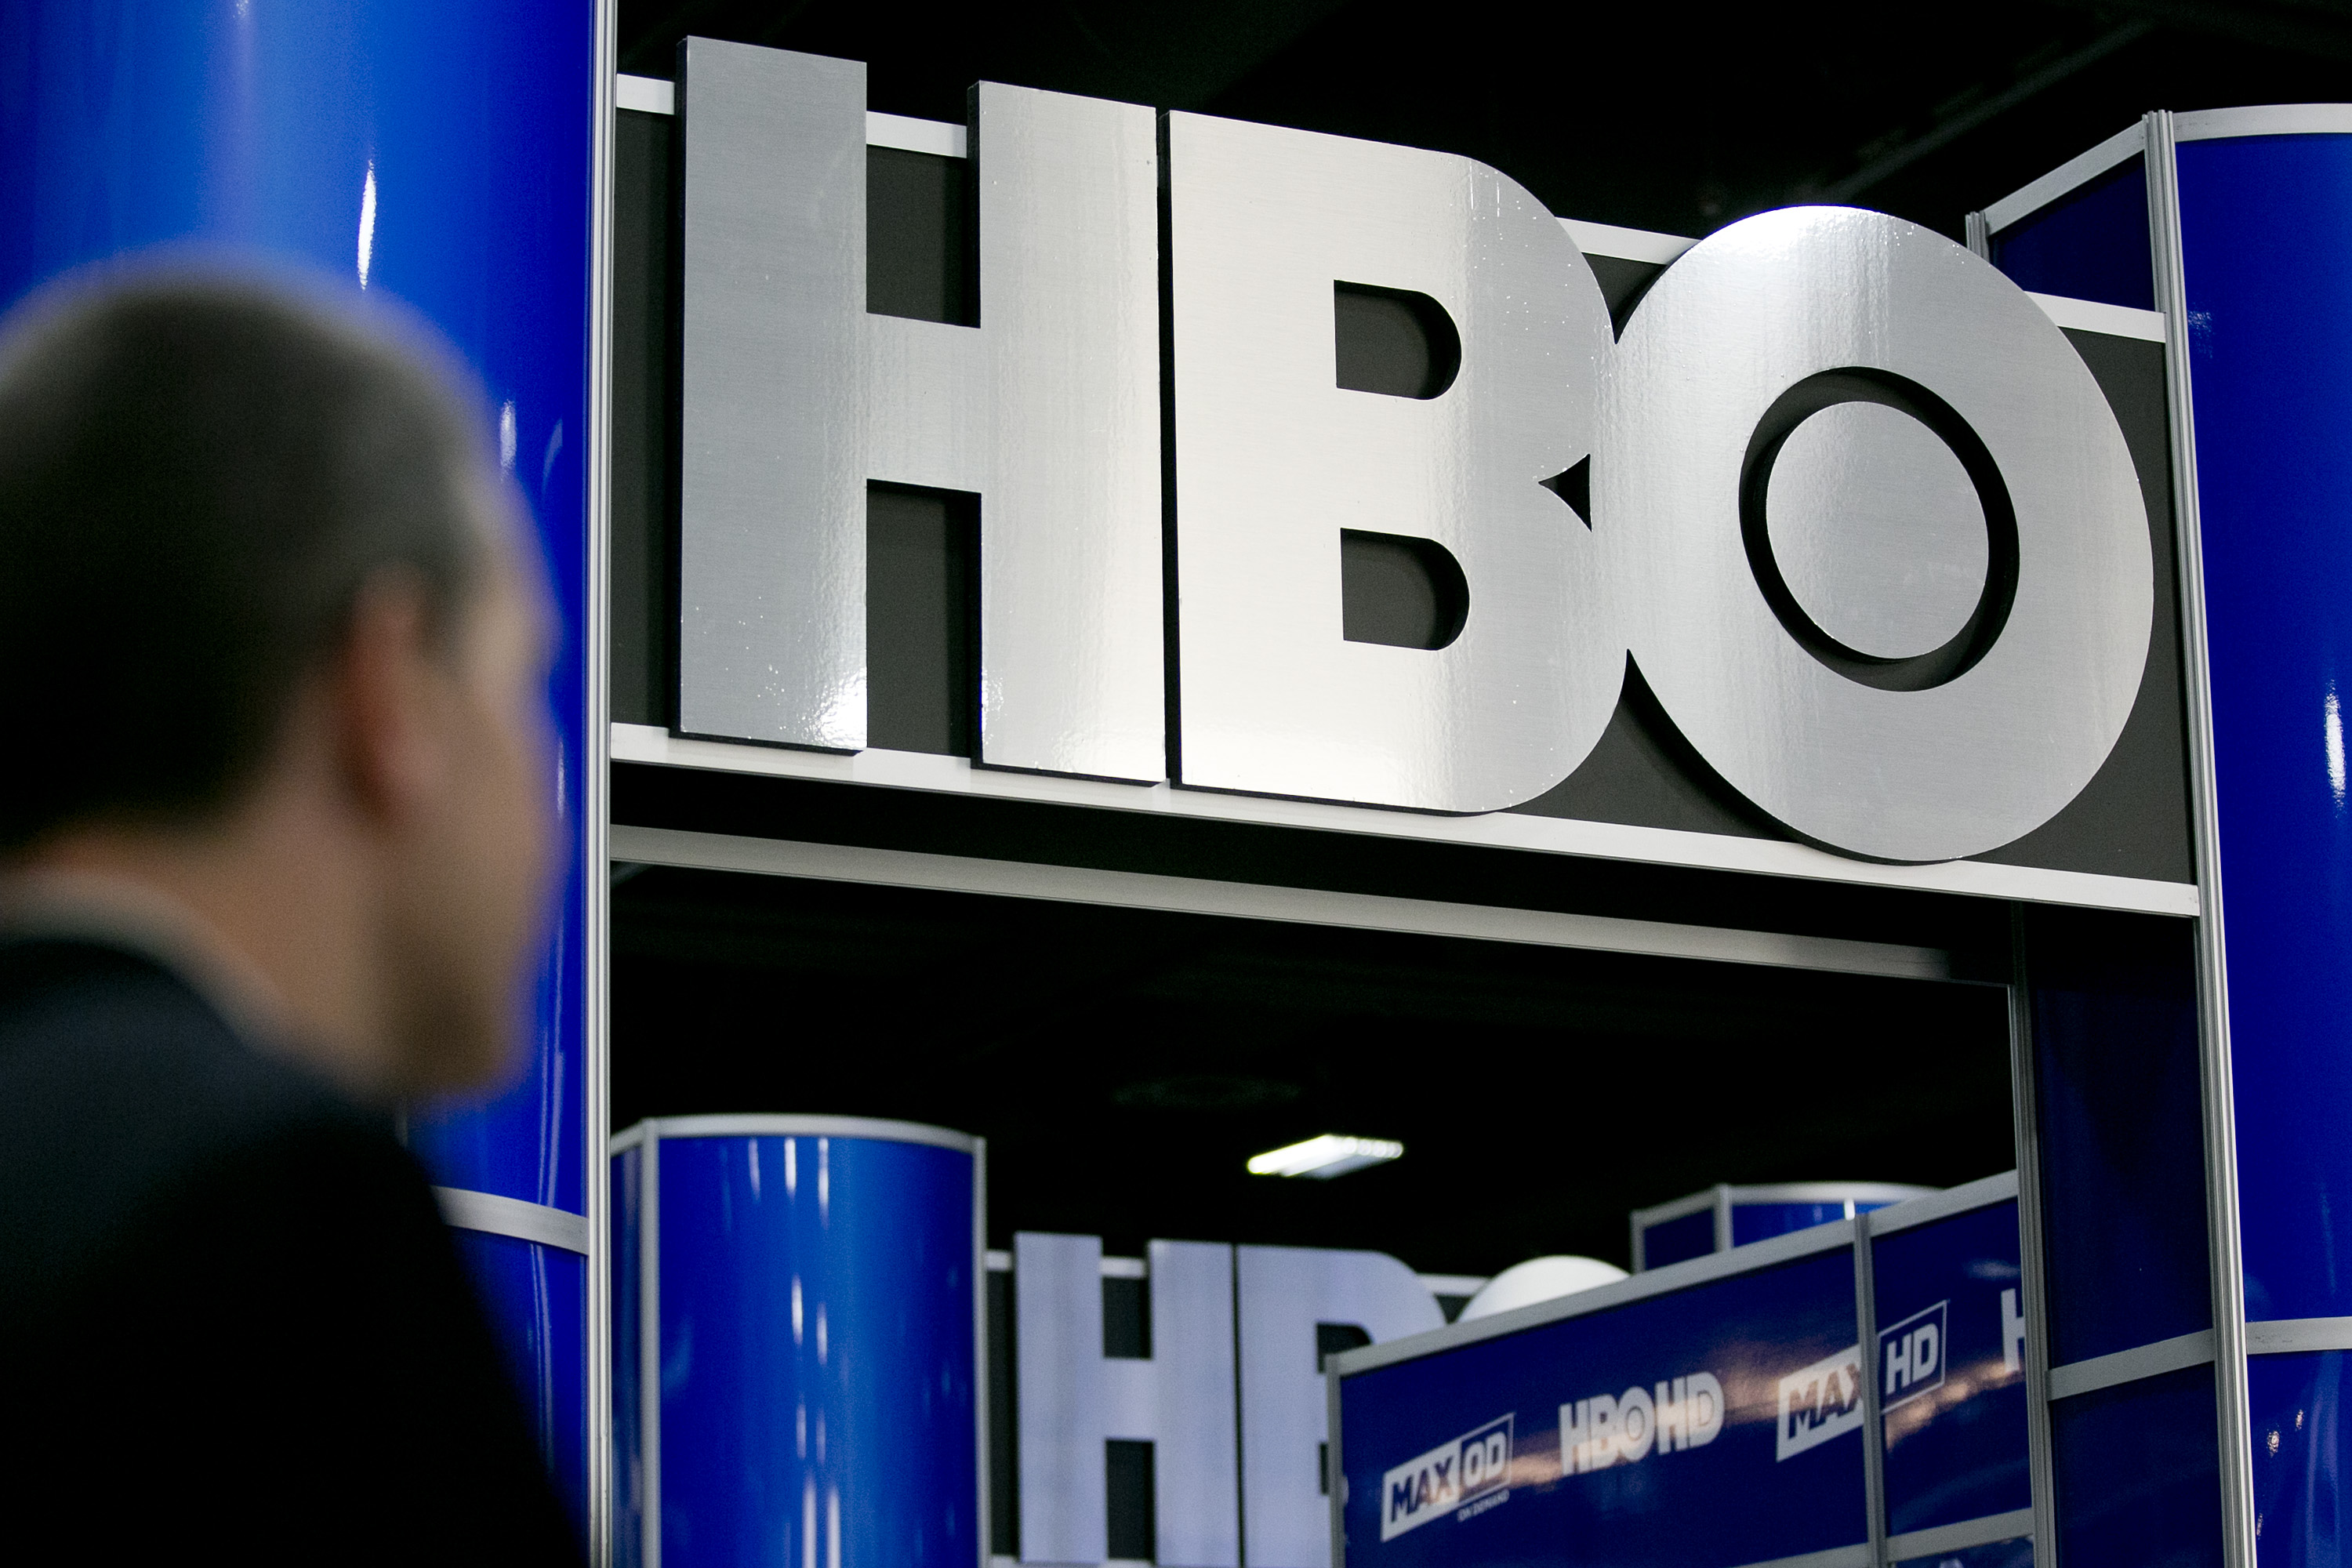 The logo of Home Box Office Inc. (HBO) is seen on the exhibit floor during the National Cable and Telecommunications Association (NCTA) Cable Show in Washington on June 11, 2013.